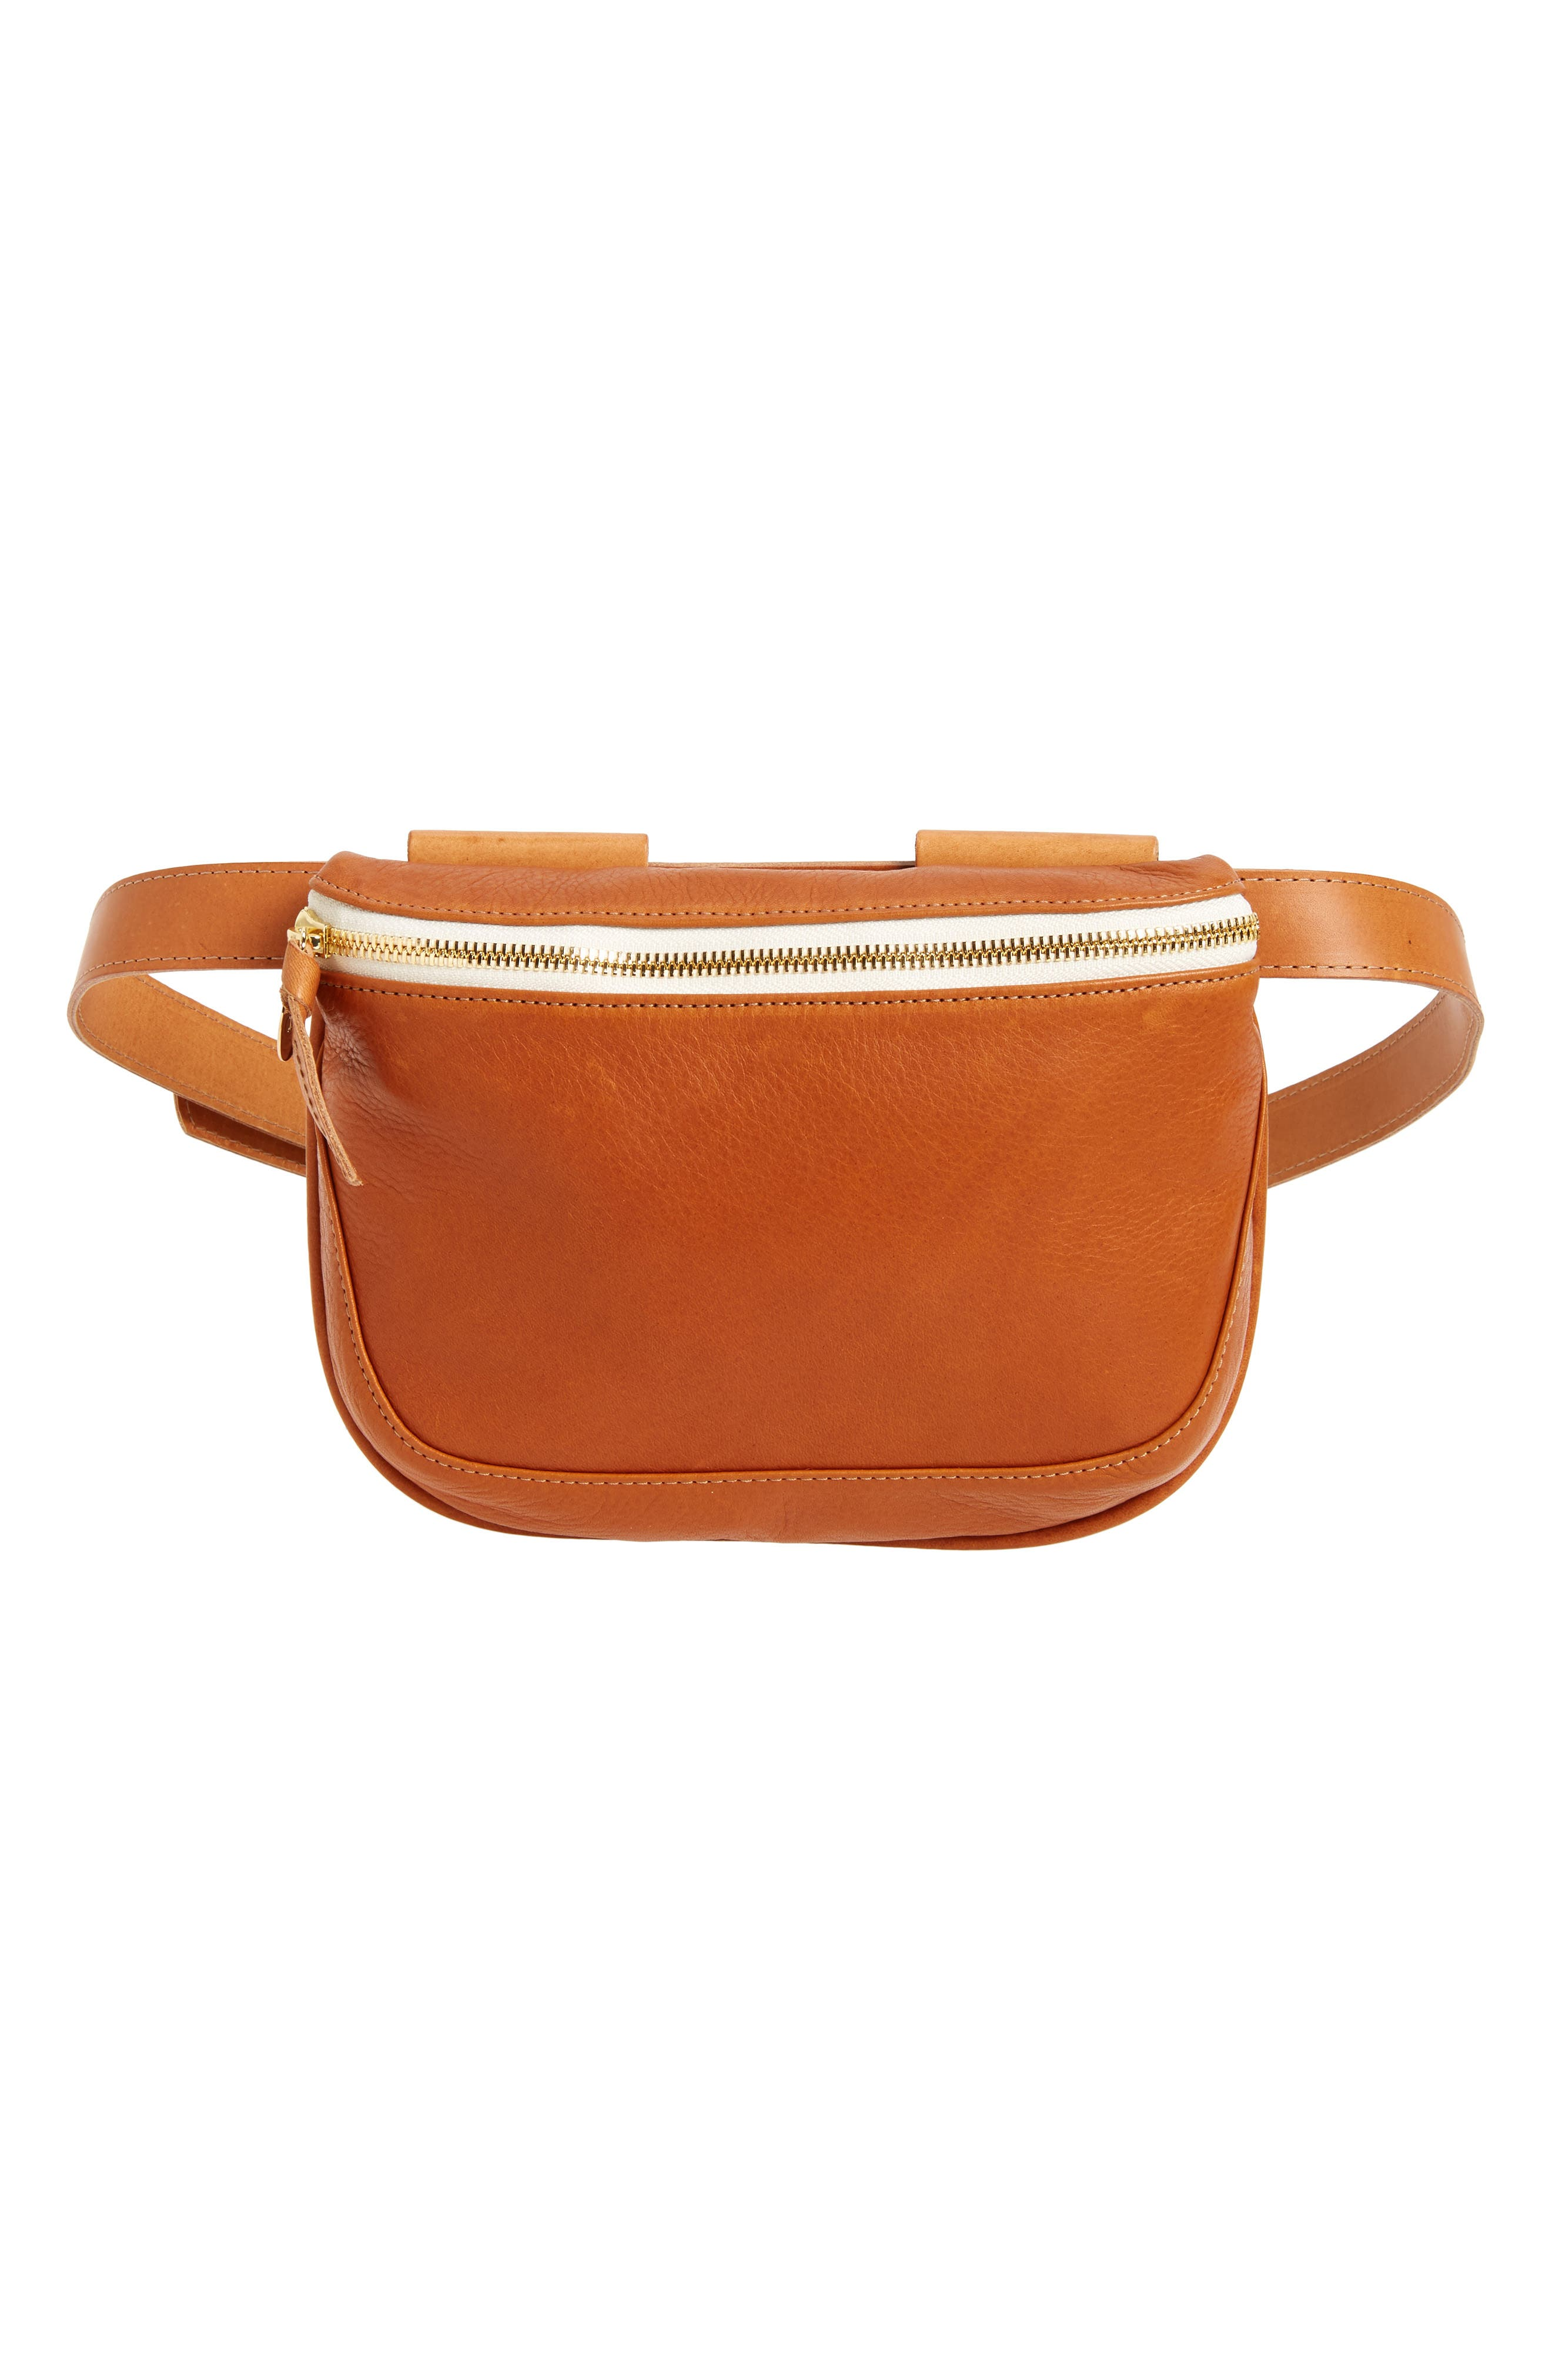 Clare V. Neptune Leather Fanny Pack